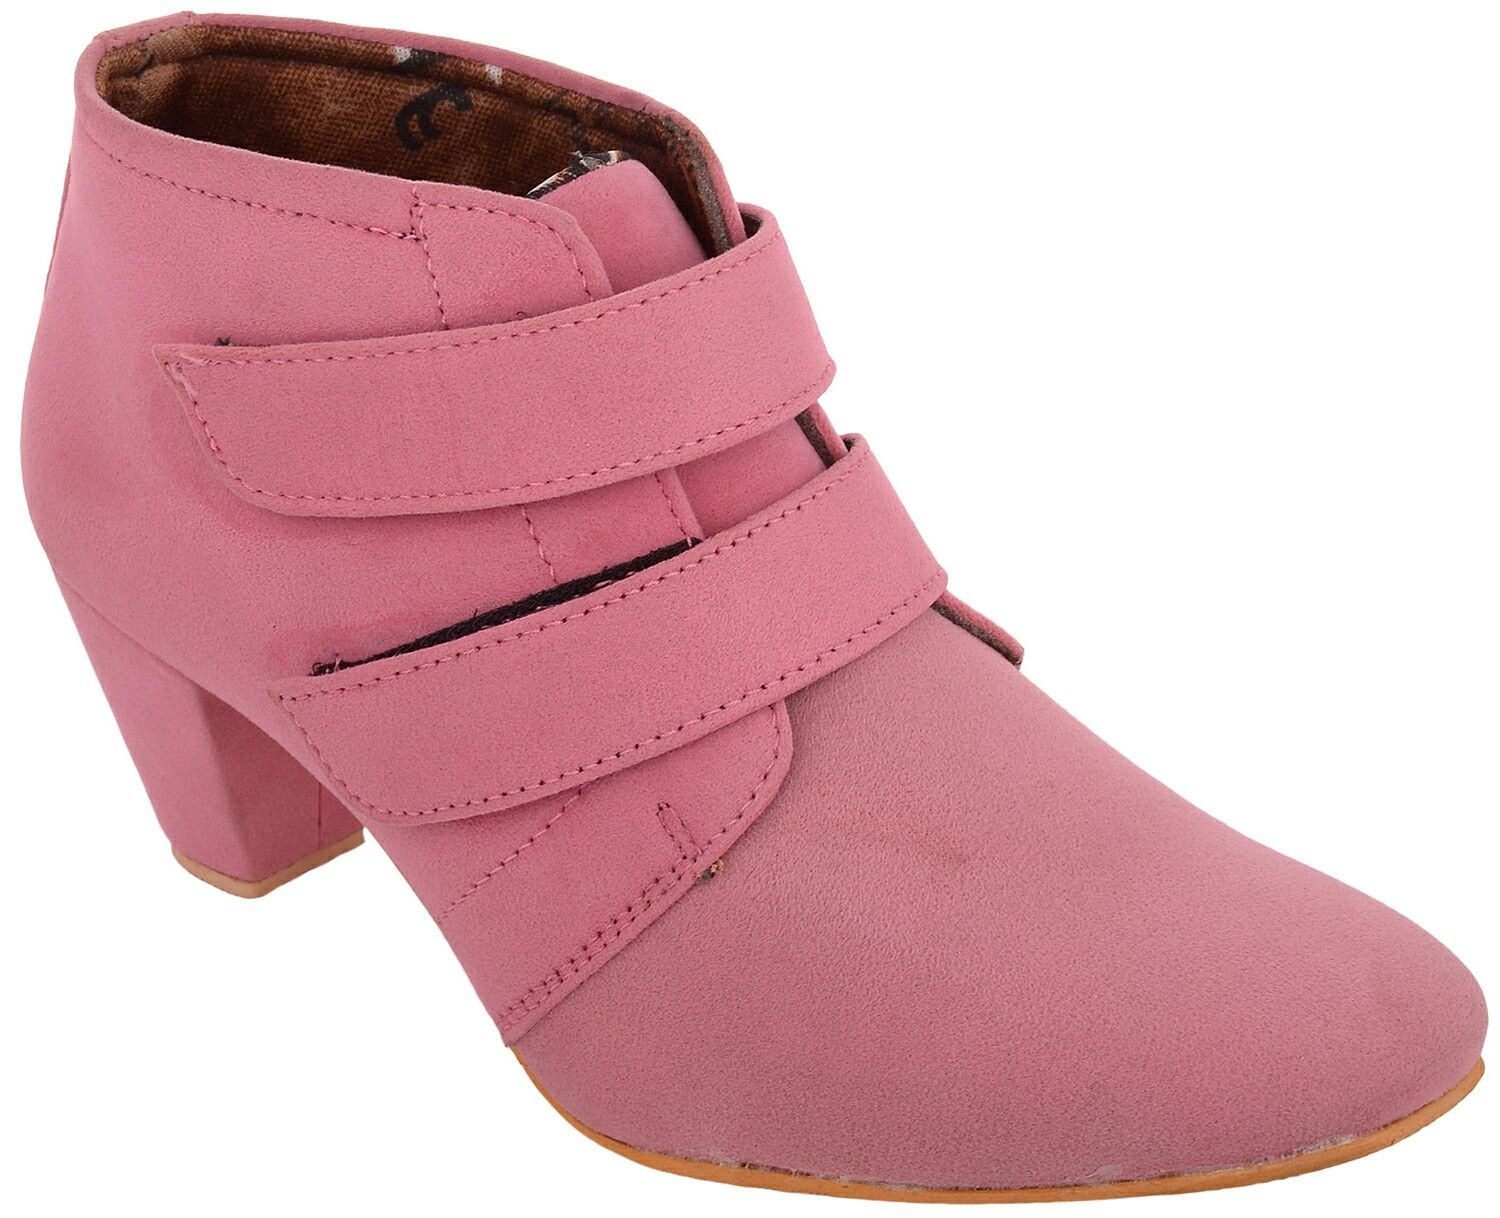 #Boots #casual #exotique_shoes Shop Exotique Shoes ...